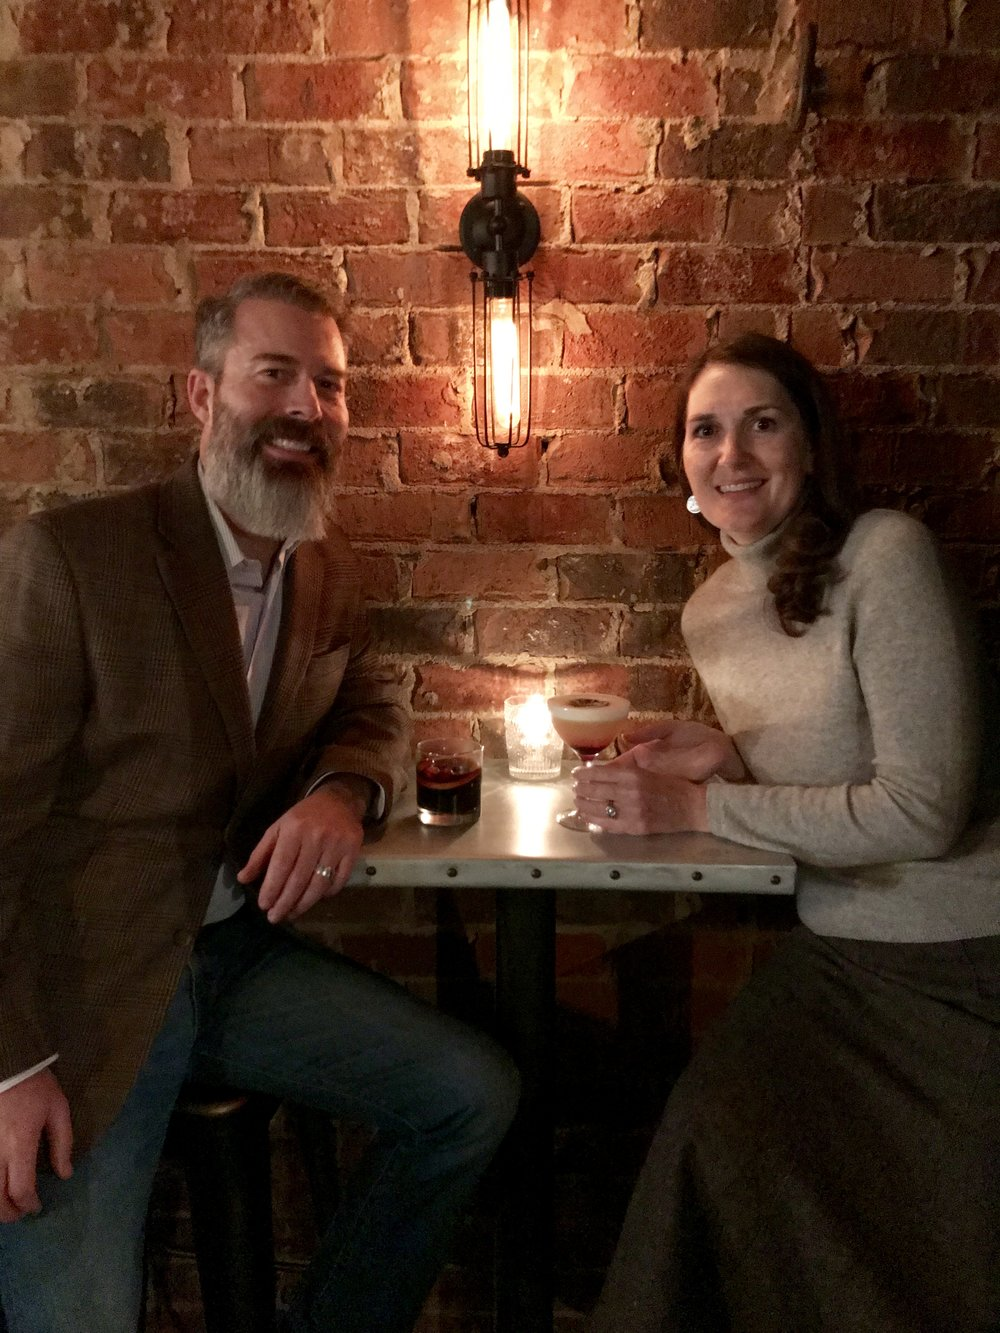 Scott & Sharon from GraciousRoots LOVING their local Speakeasy Vault &Vator!